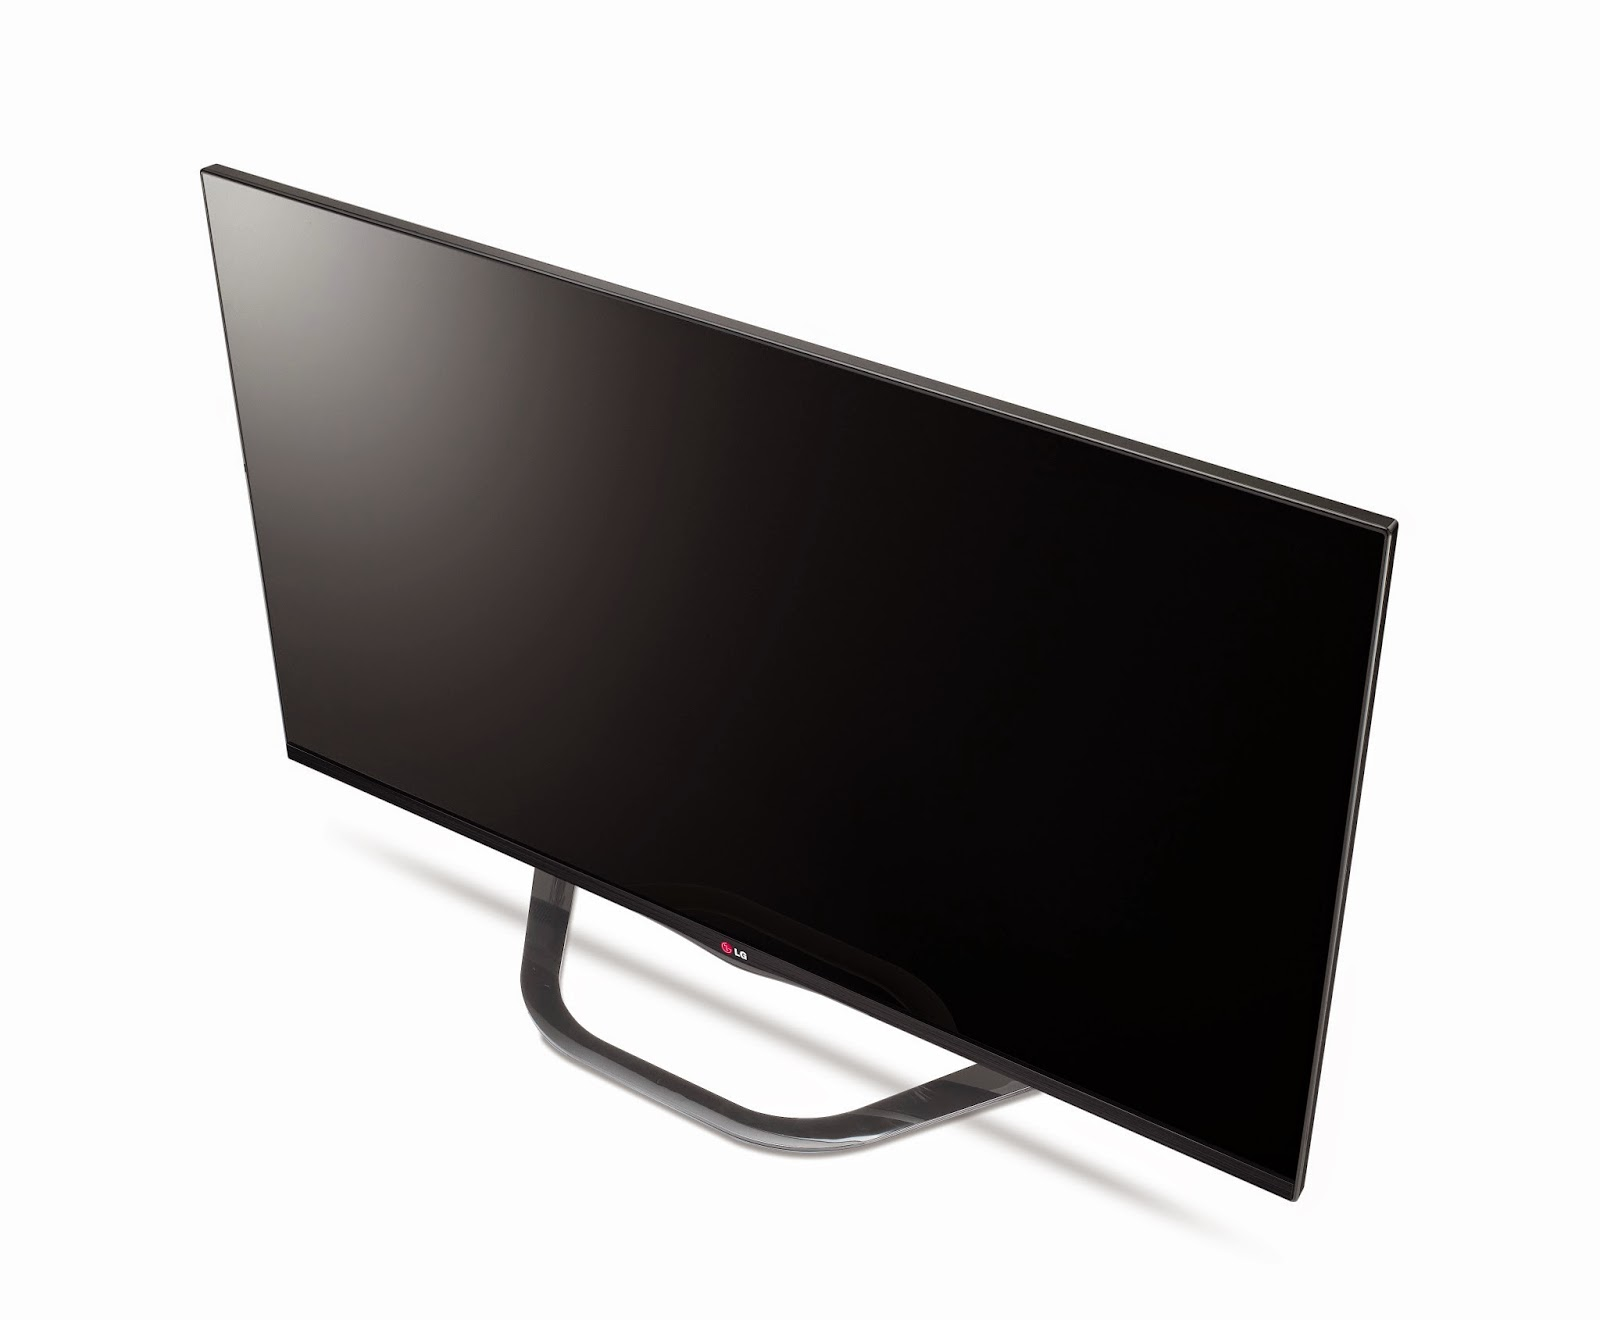 Prices Of Led Tv In Nigeria Buy Samsung Lg Sony Sharp Online